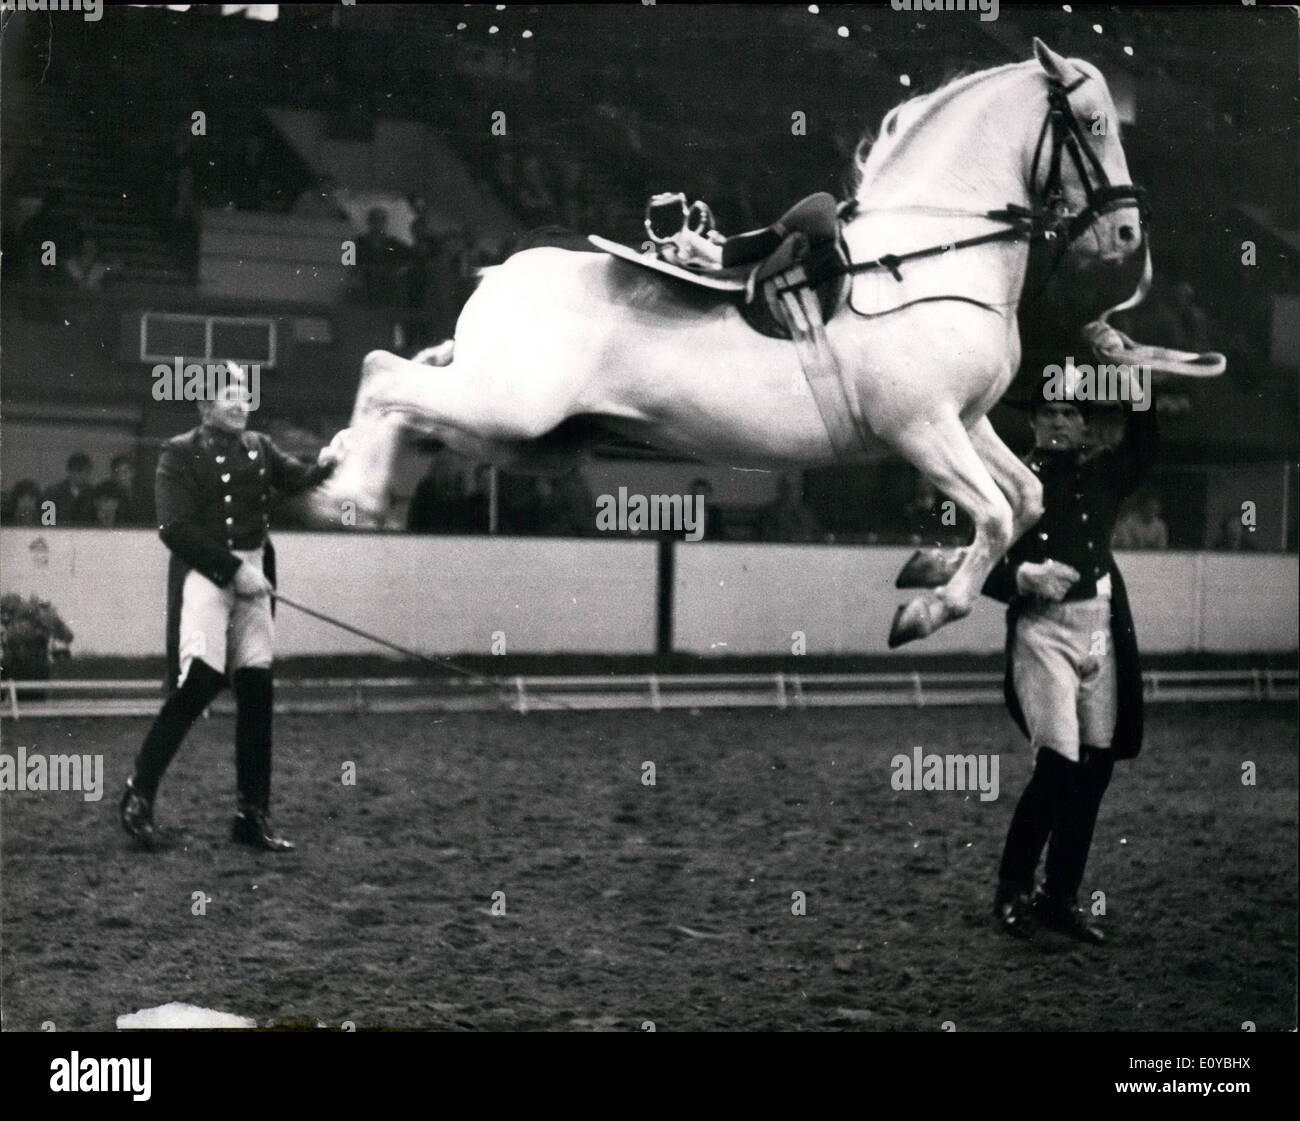 Oct. 10, 1969 - The Spanish riding school of Vienna give display at the Empire pool-Wembley: The Spanish Riding School of Vienna will be giving a complete performance of the Classical Art of Riding as practised at the Imperial Court of Vienna for 400 years, at the Empire Pool, Wembley, next week. Today the Lipizzaner Stallions of the famous school were rehearsing at Wembley for next week's display: Photo shows one of the famous Lipizzaner stallions performs the Capriole - in this the horse leaps simultaneously with all four feet and at the height of its leap, with its body horizontal - Stock Image